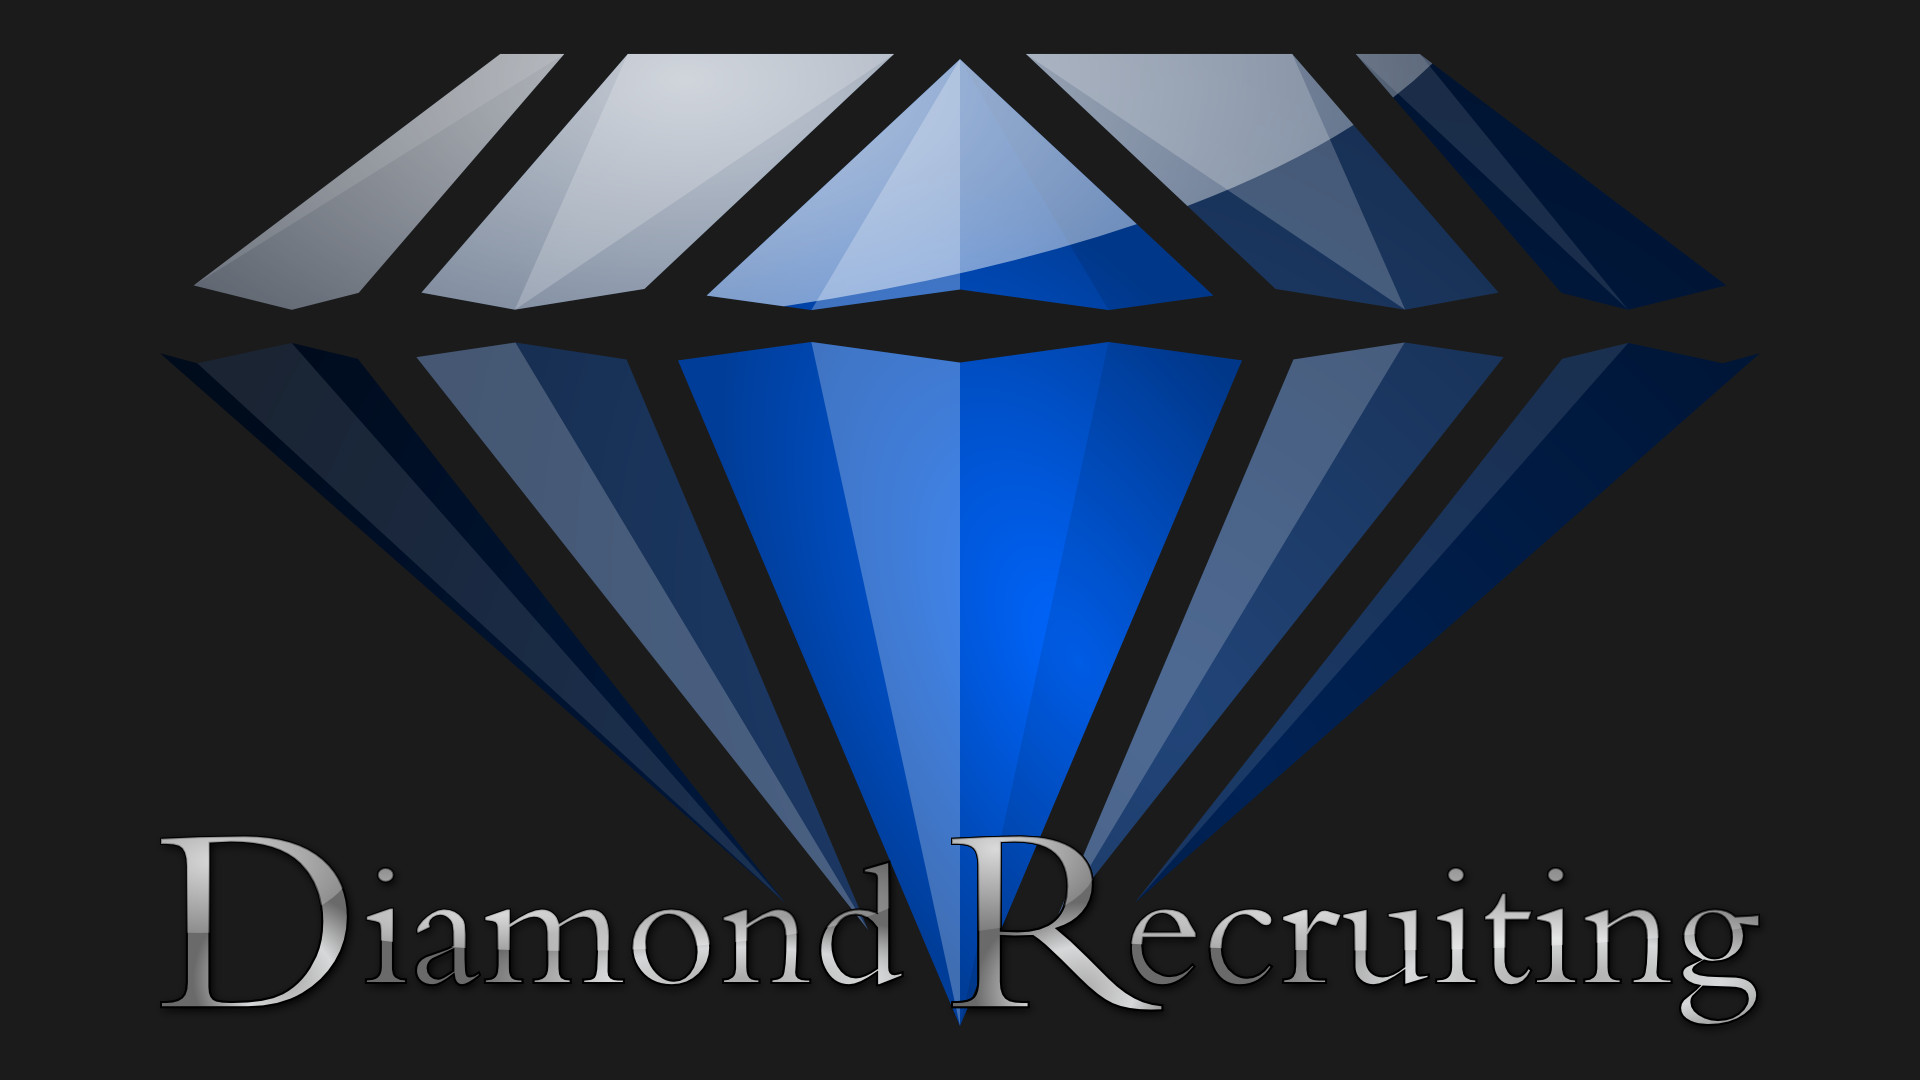 Diamond Recruiting